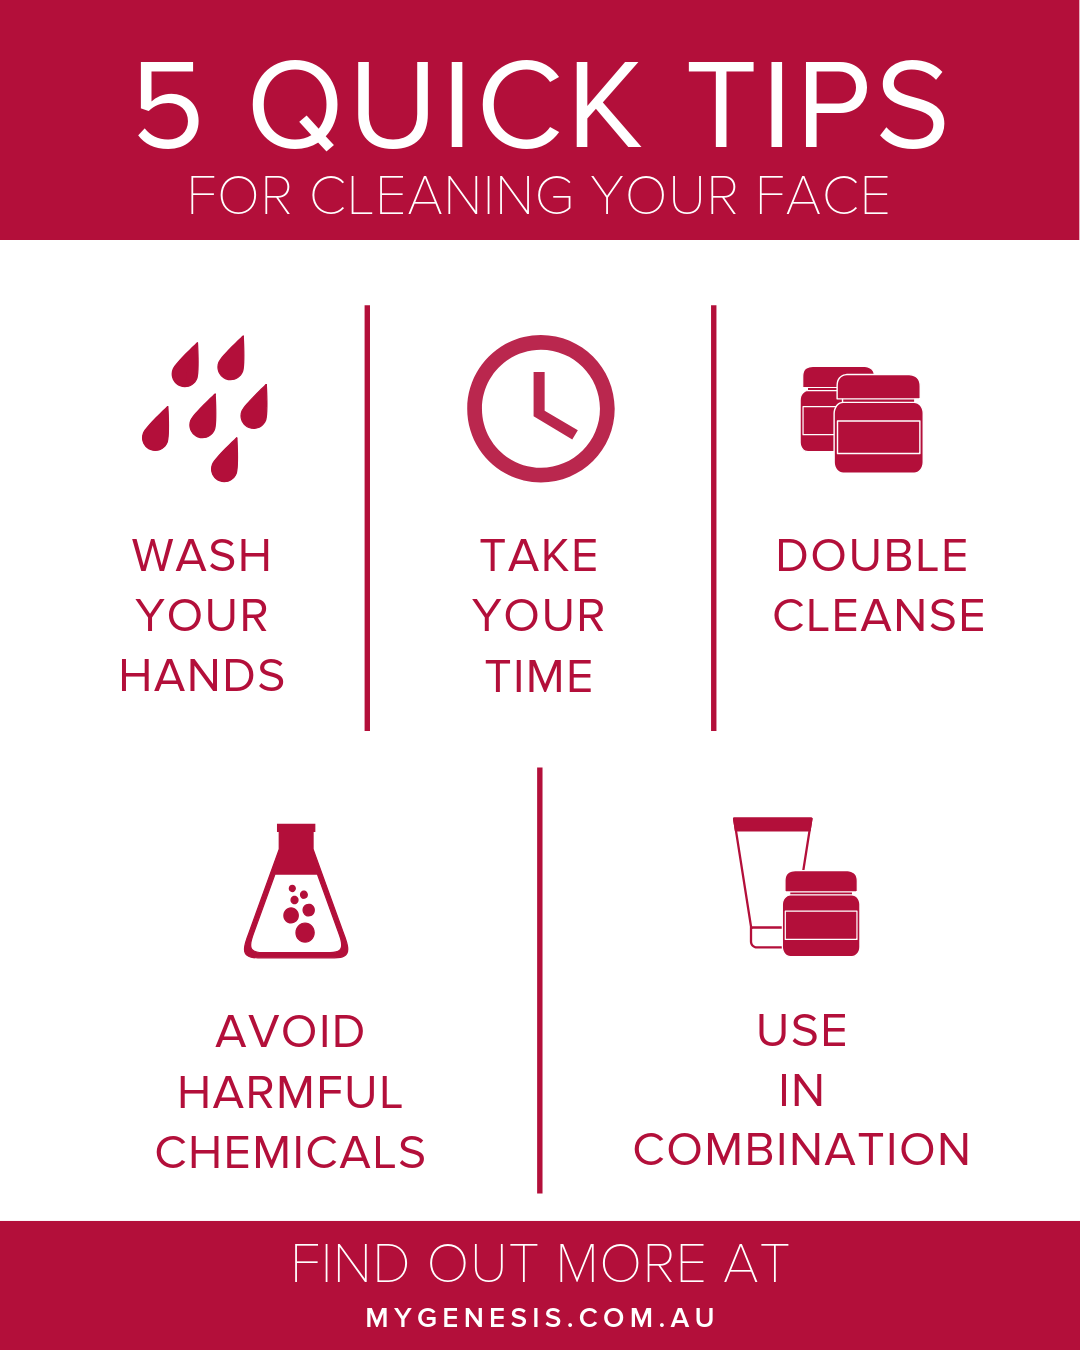 How to Cleanse Your Skin The Right Way - My Genesis